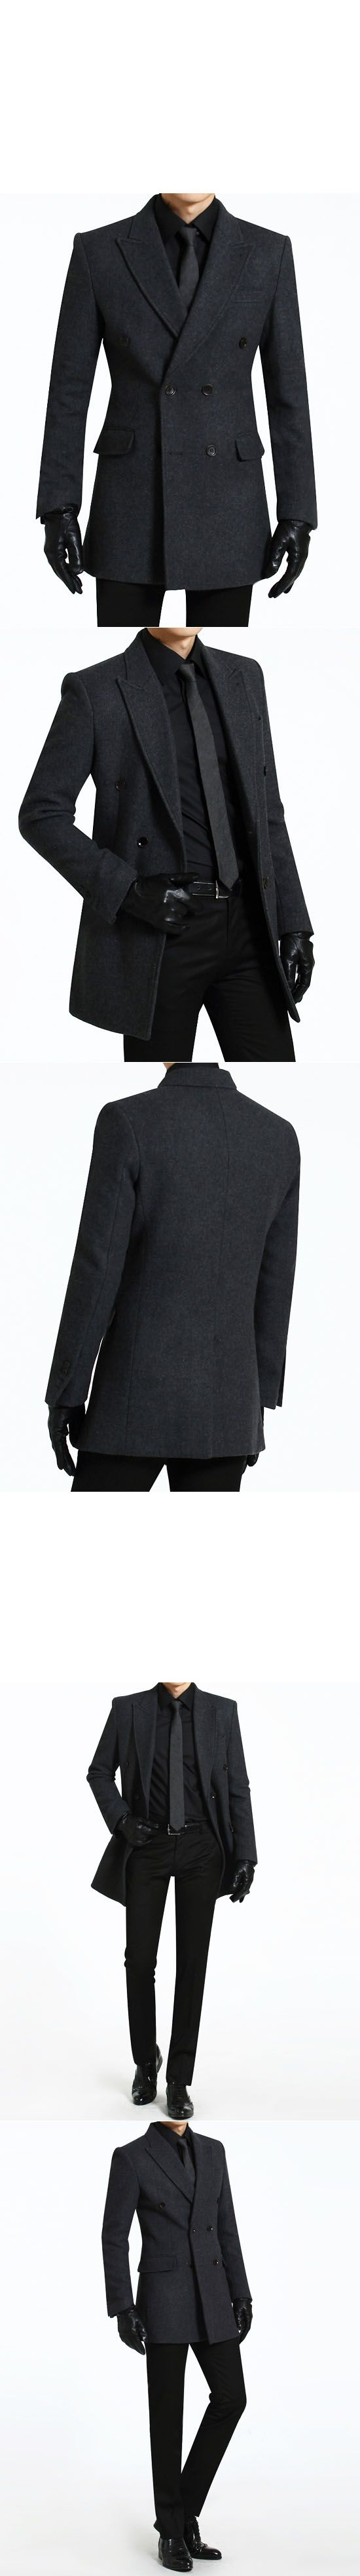 Outerwear :: Coats :: Sharp Classic Double Wool Peaked Lapel-Coat 56 - Mens Fashion Clothing For An Attractive Guy Look